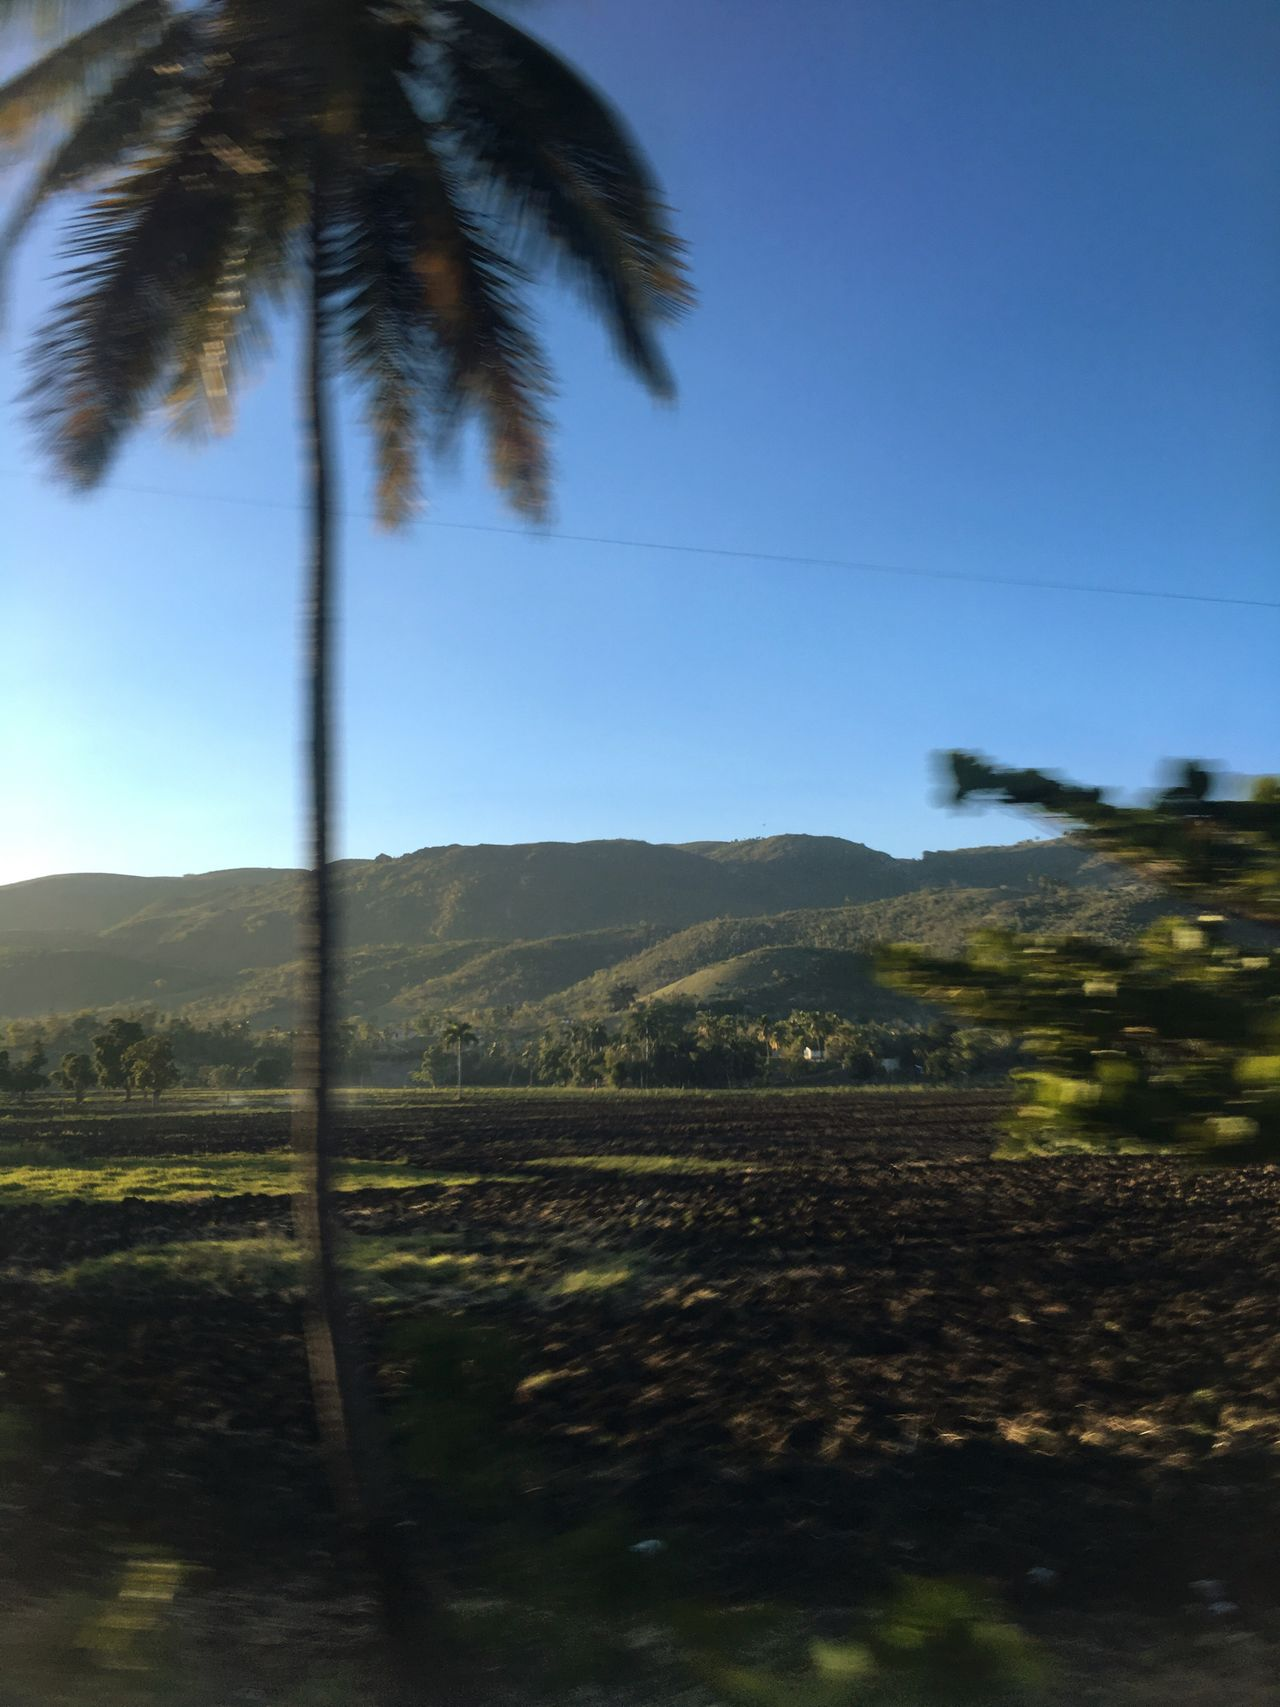 Palm Tree Tranquil Scene Tranquility Scenics Solitude Clear Sky Landscape Beauty In Nature Growth Nature Mountain Tree Trunk No People Countryside Mountain Range Outdoors Motion Motion Blur Haiti